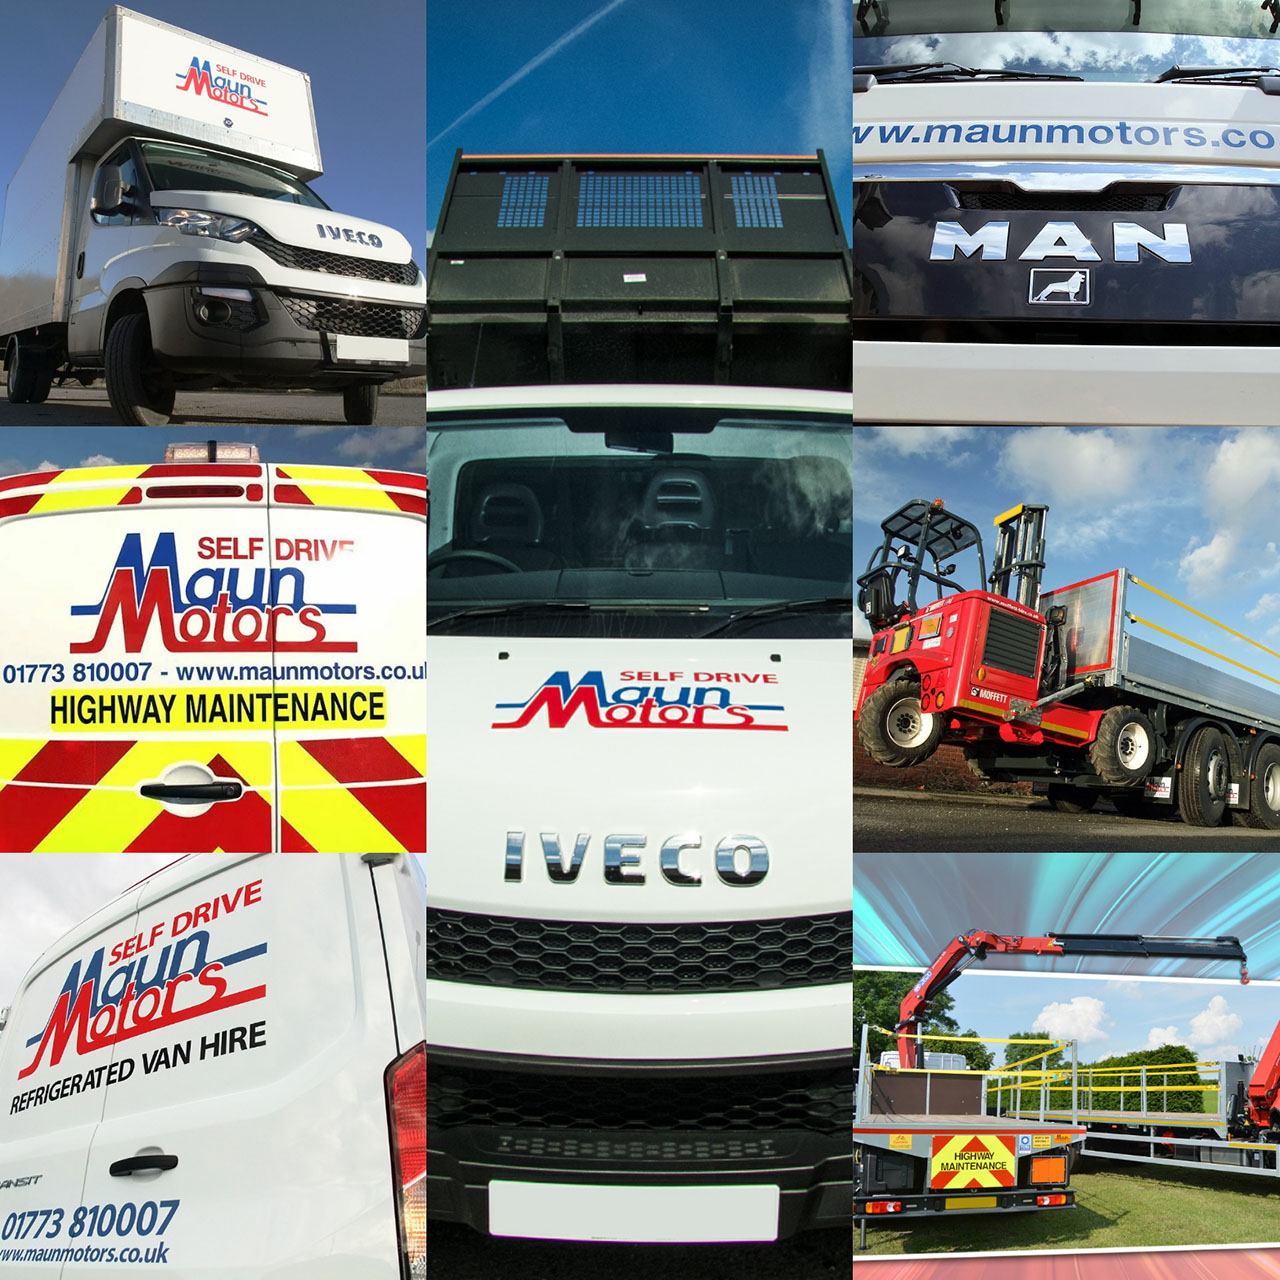 Contract Hire of Commercial Vehicles - Vans, Trucks, HIAB Crane Lorries, Minibuses, Moffett Fork Lifts & HGV Trailers